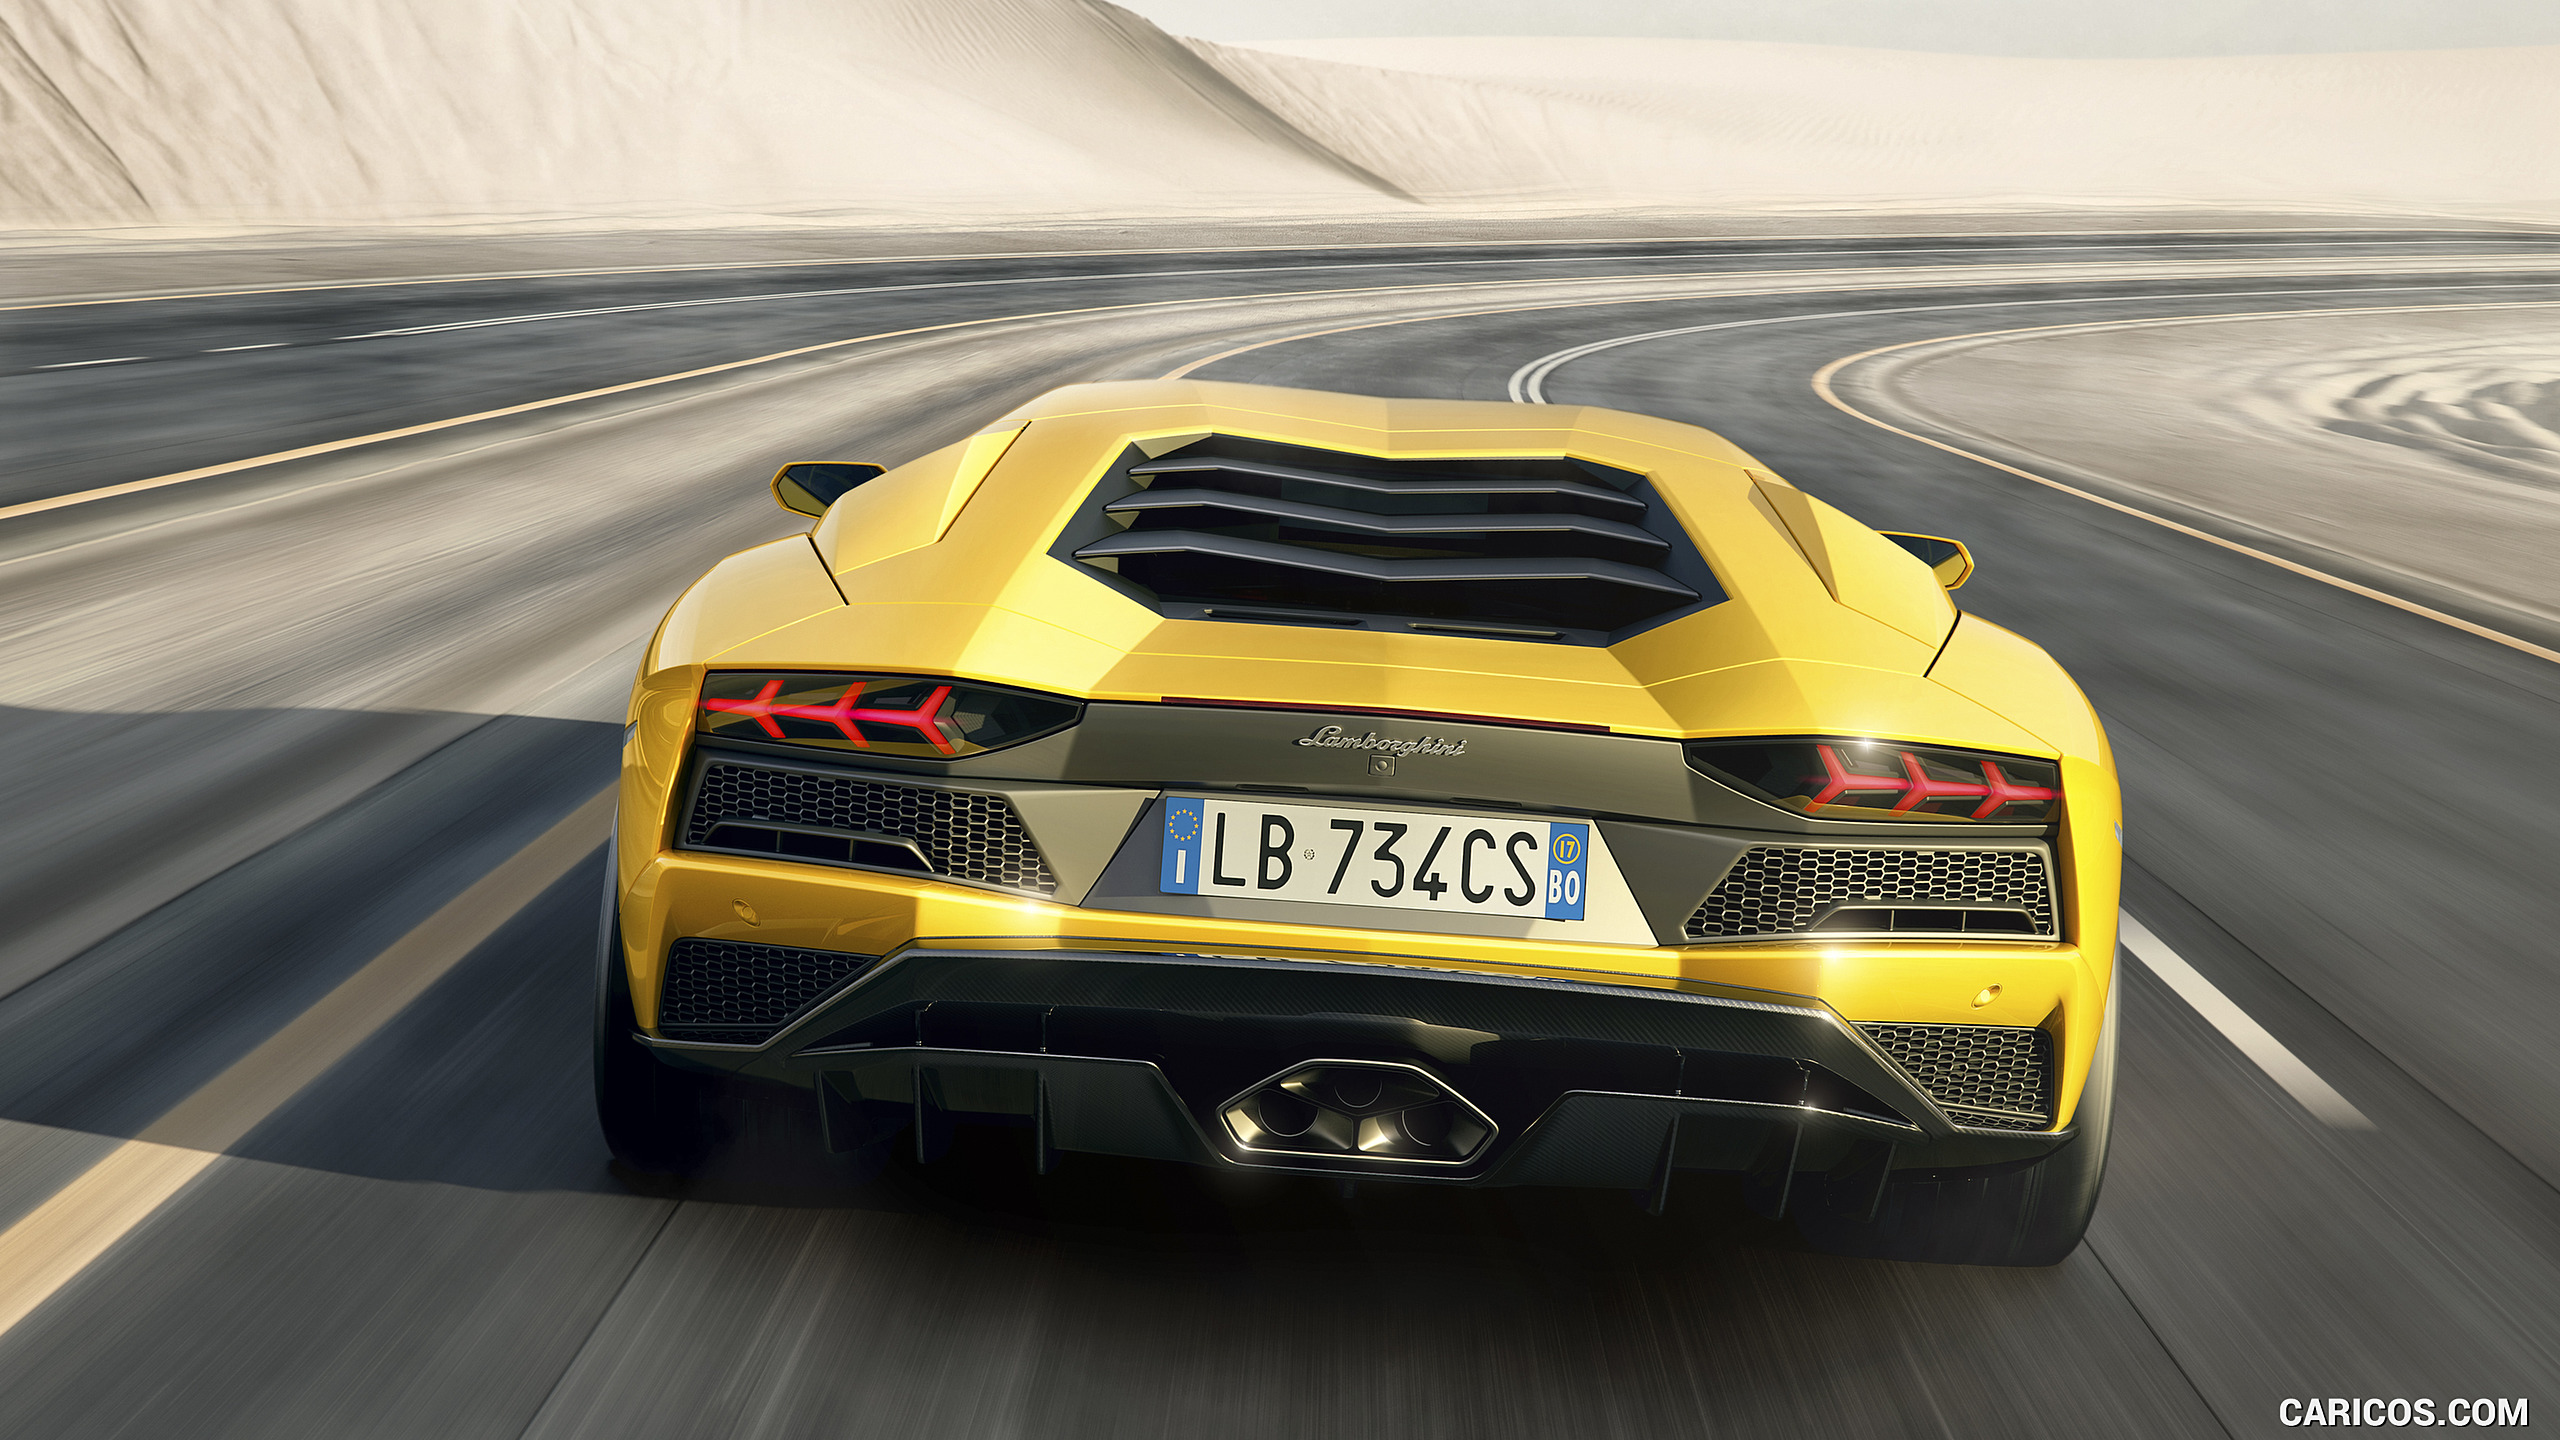 2017 Lamborghini Aventador S   Rear HD Wallpaper 8 2560x1440